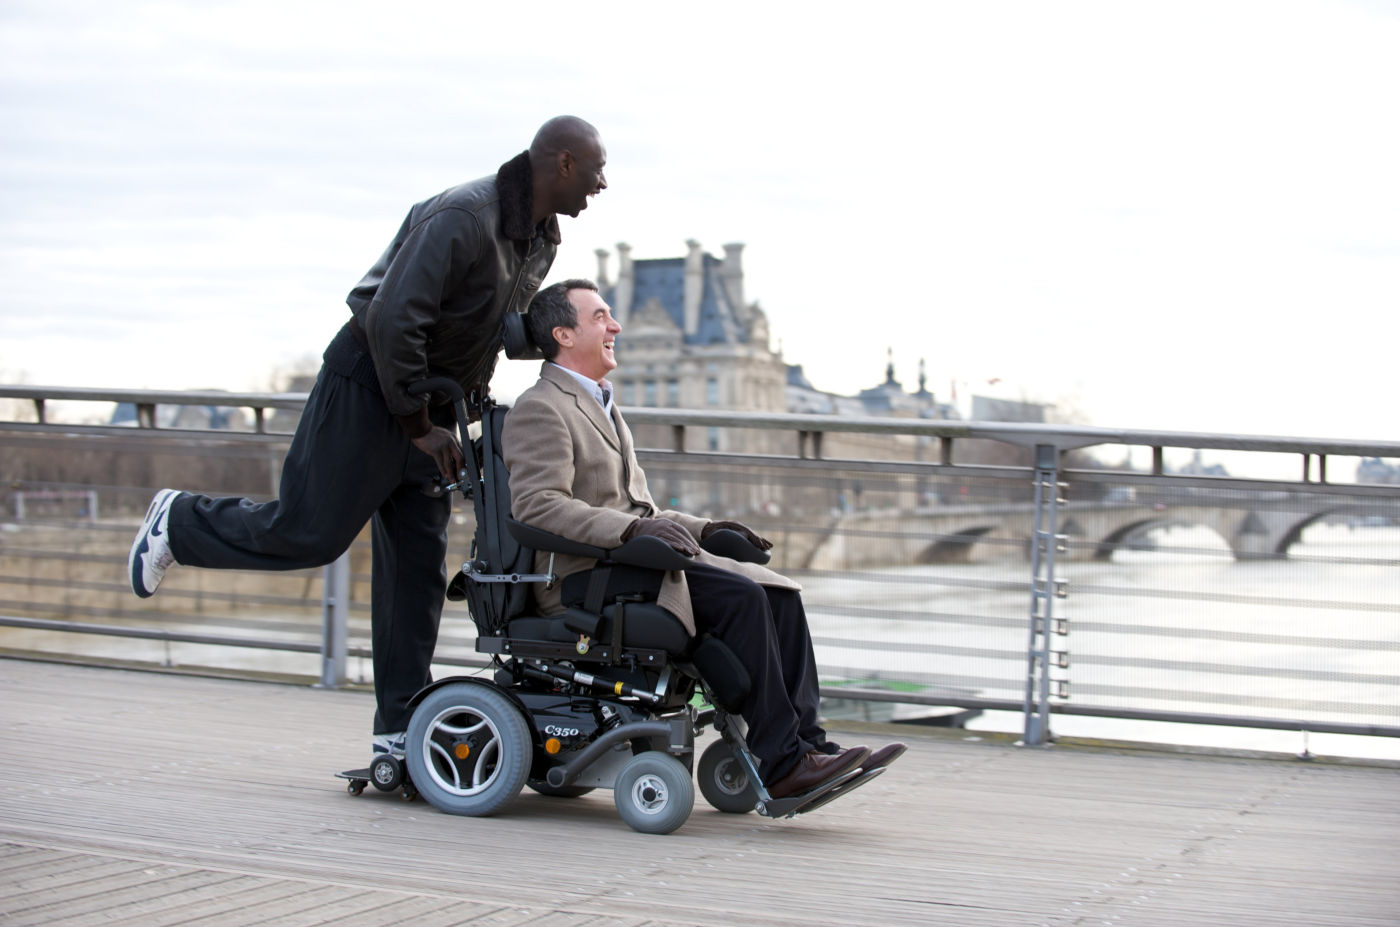 Driss (Omar Sy, left) and Philippe (François Cluzet, right) race down the streets of Paris.